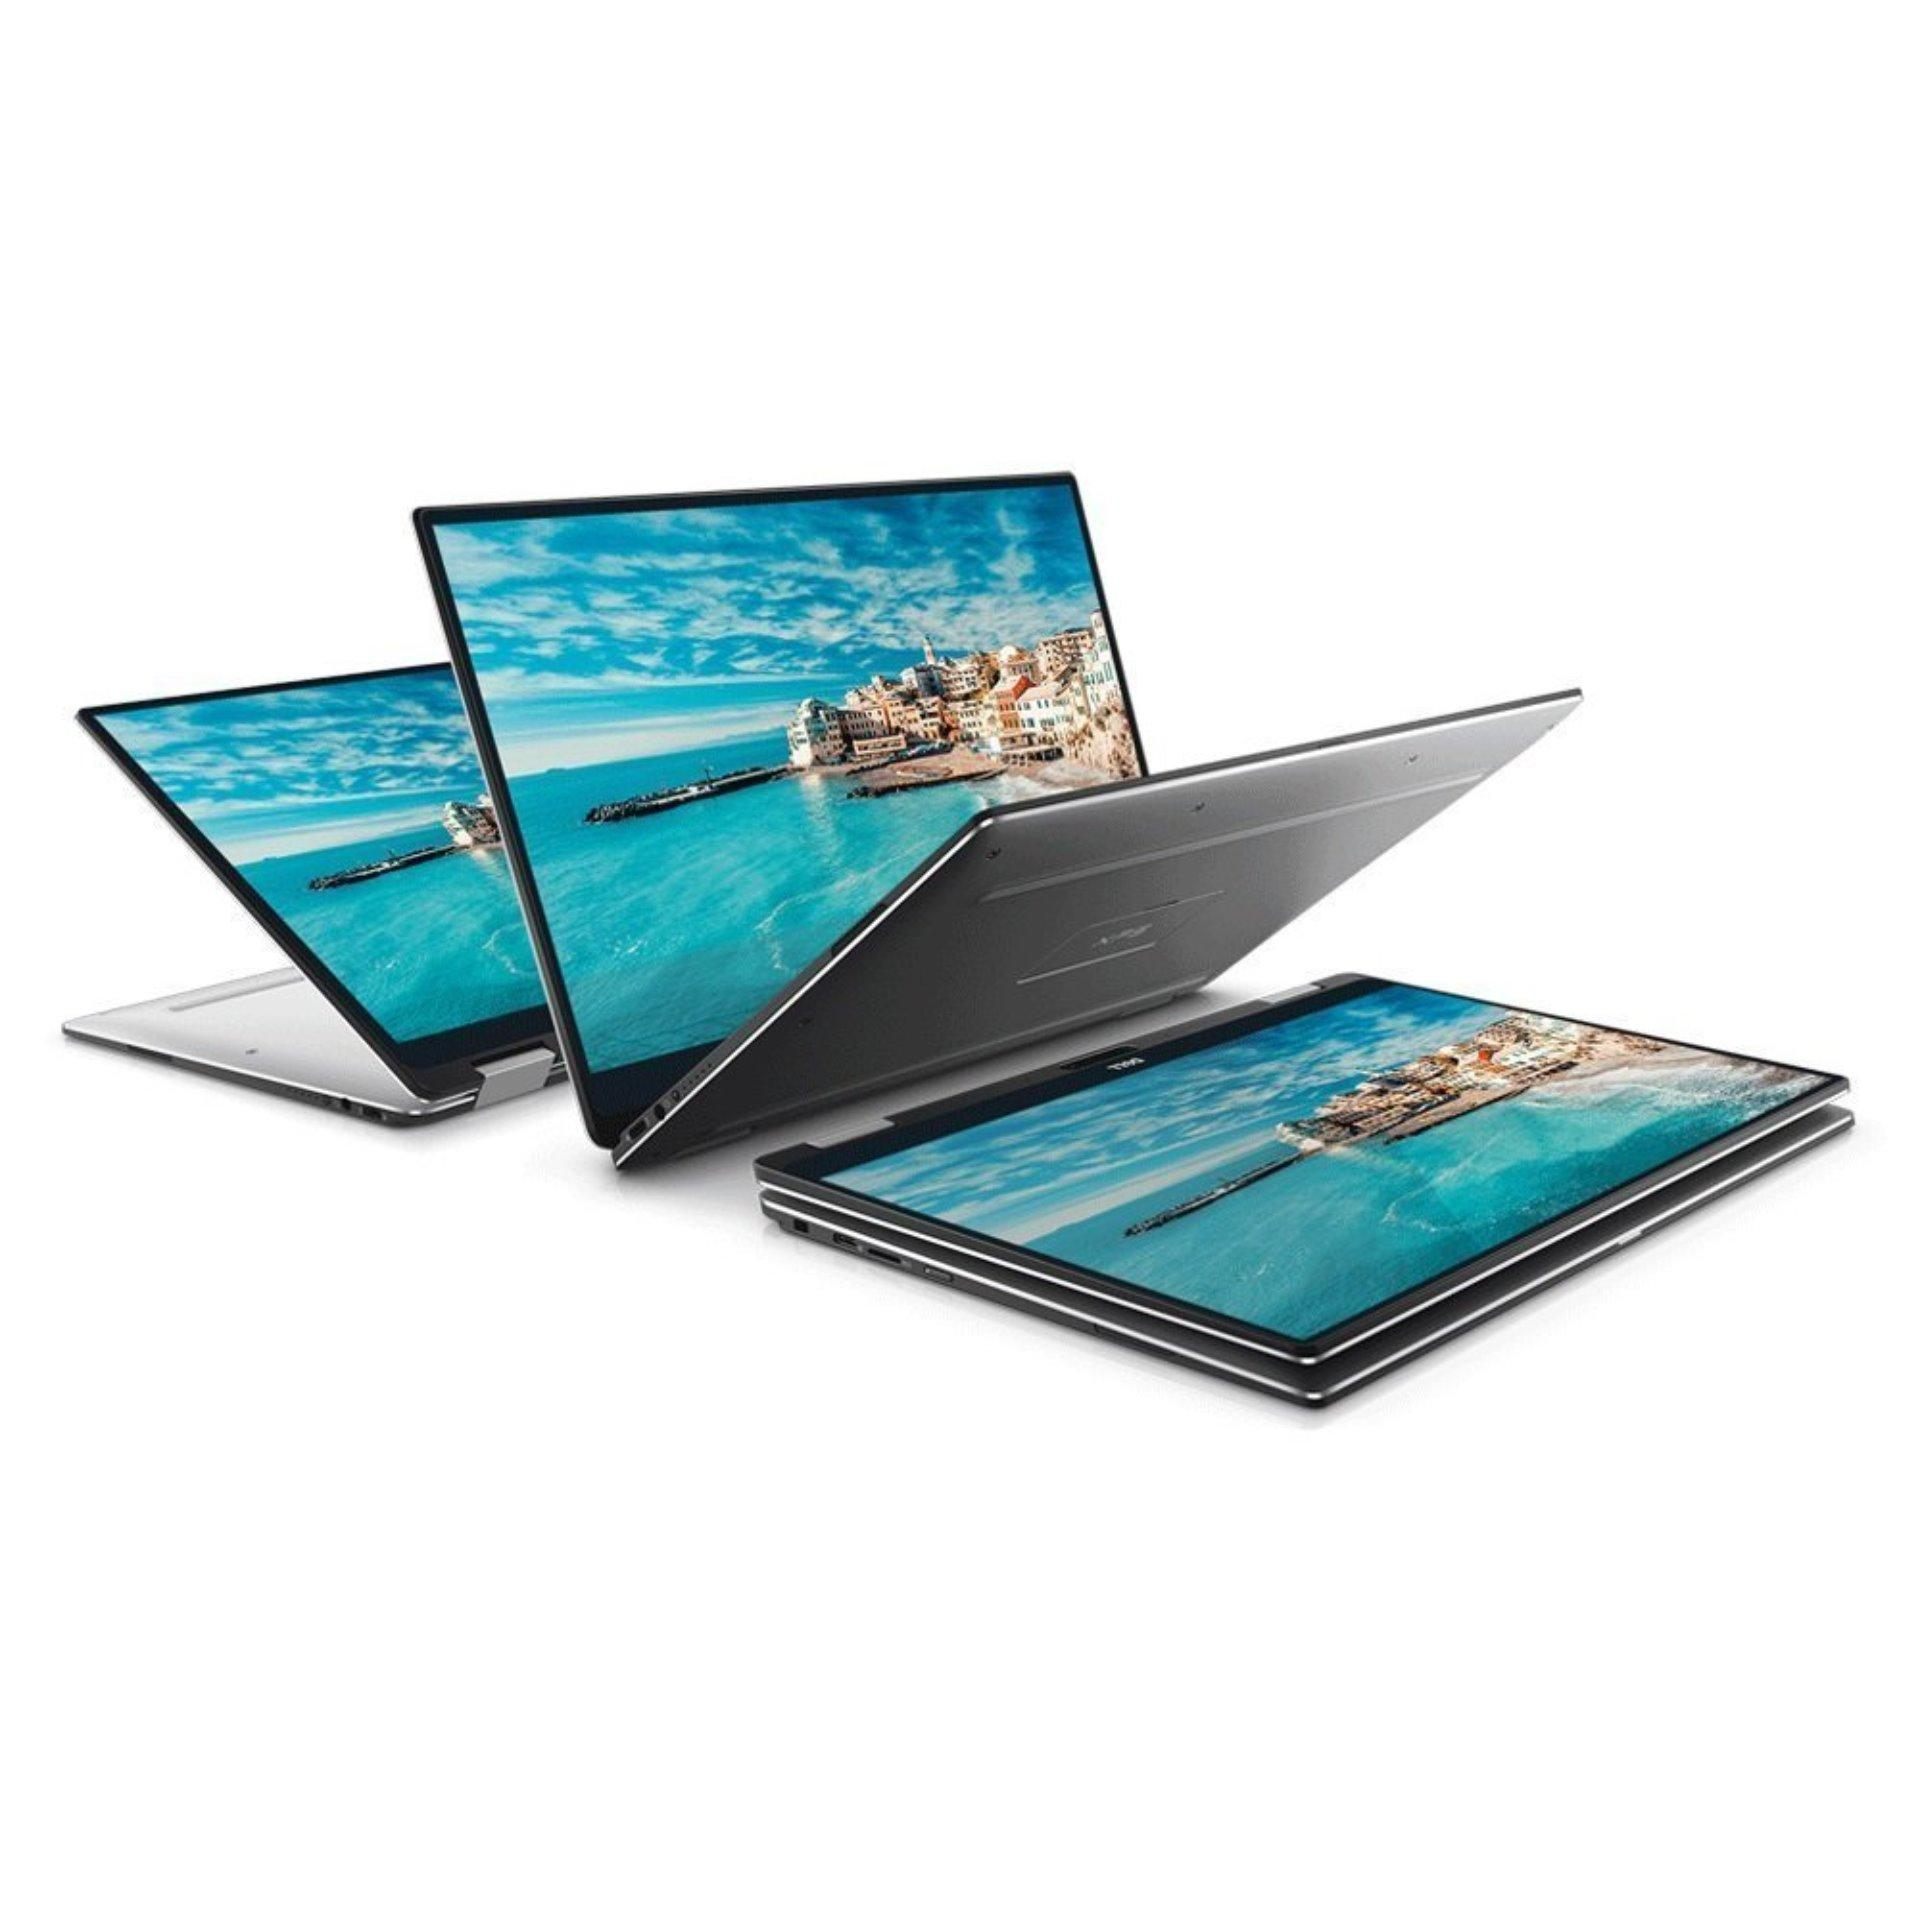 Dell XPS 13 (9365) 2-in-1 Hybrid Laptop - 9365-57Y82SG (7th Gen Intel i5, 8GB, 256 SSD)